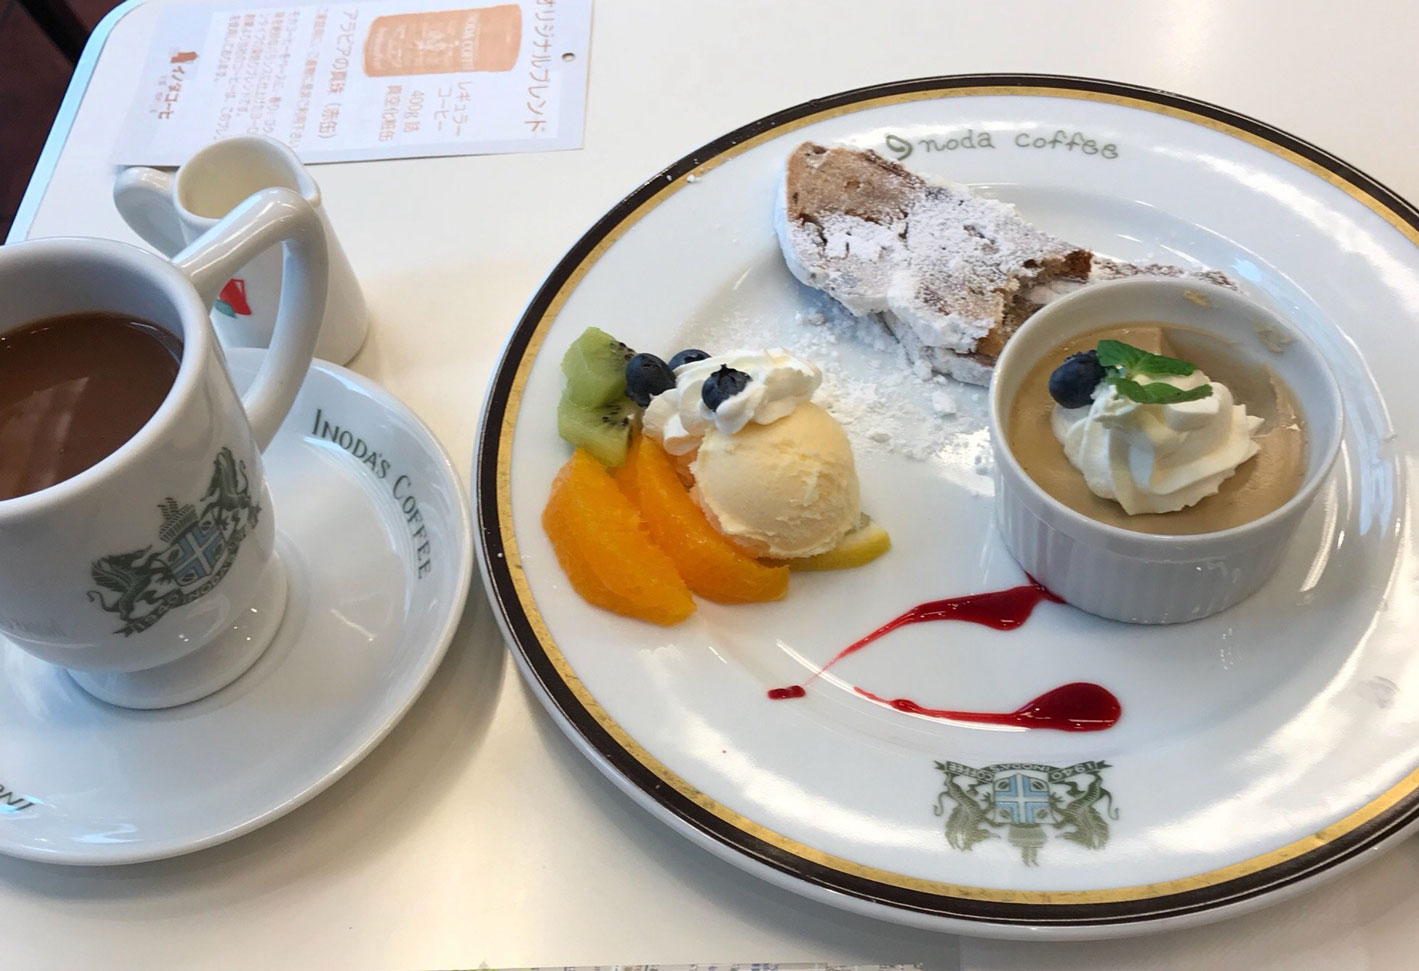 Inoda Coffee, Kyoto -  recommended in Where Chefs Eat